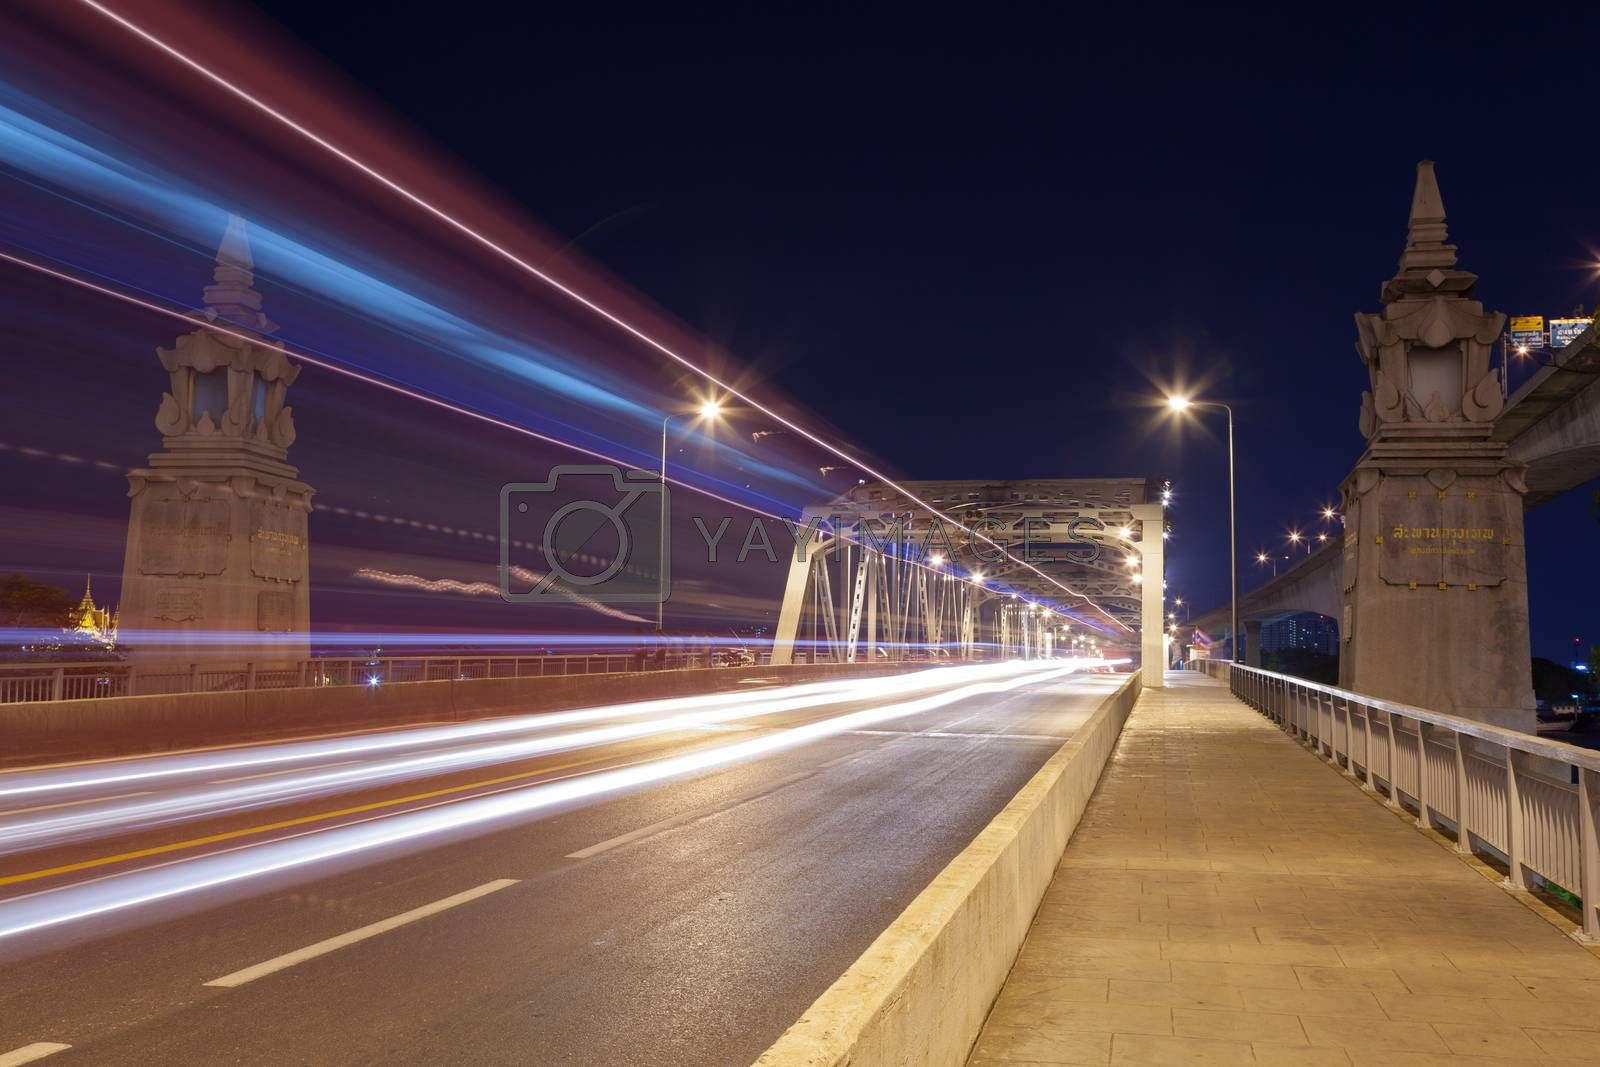 Traffic at night by a454